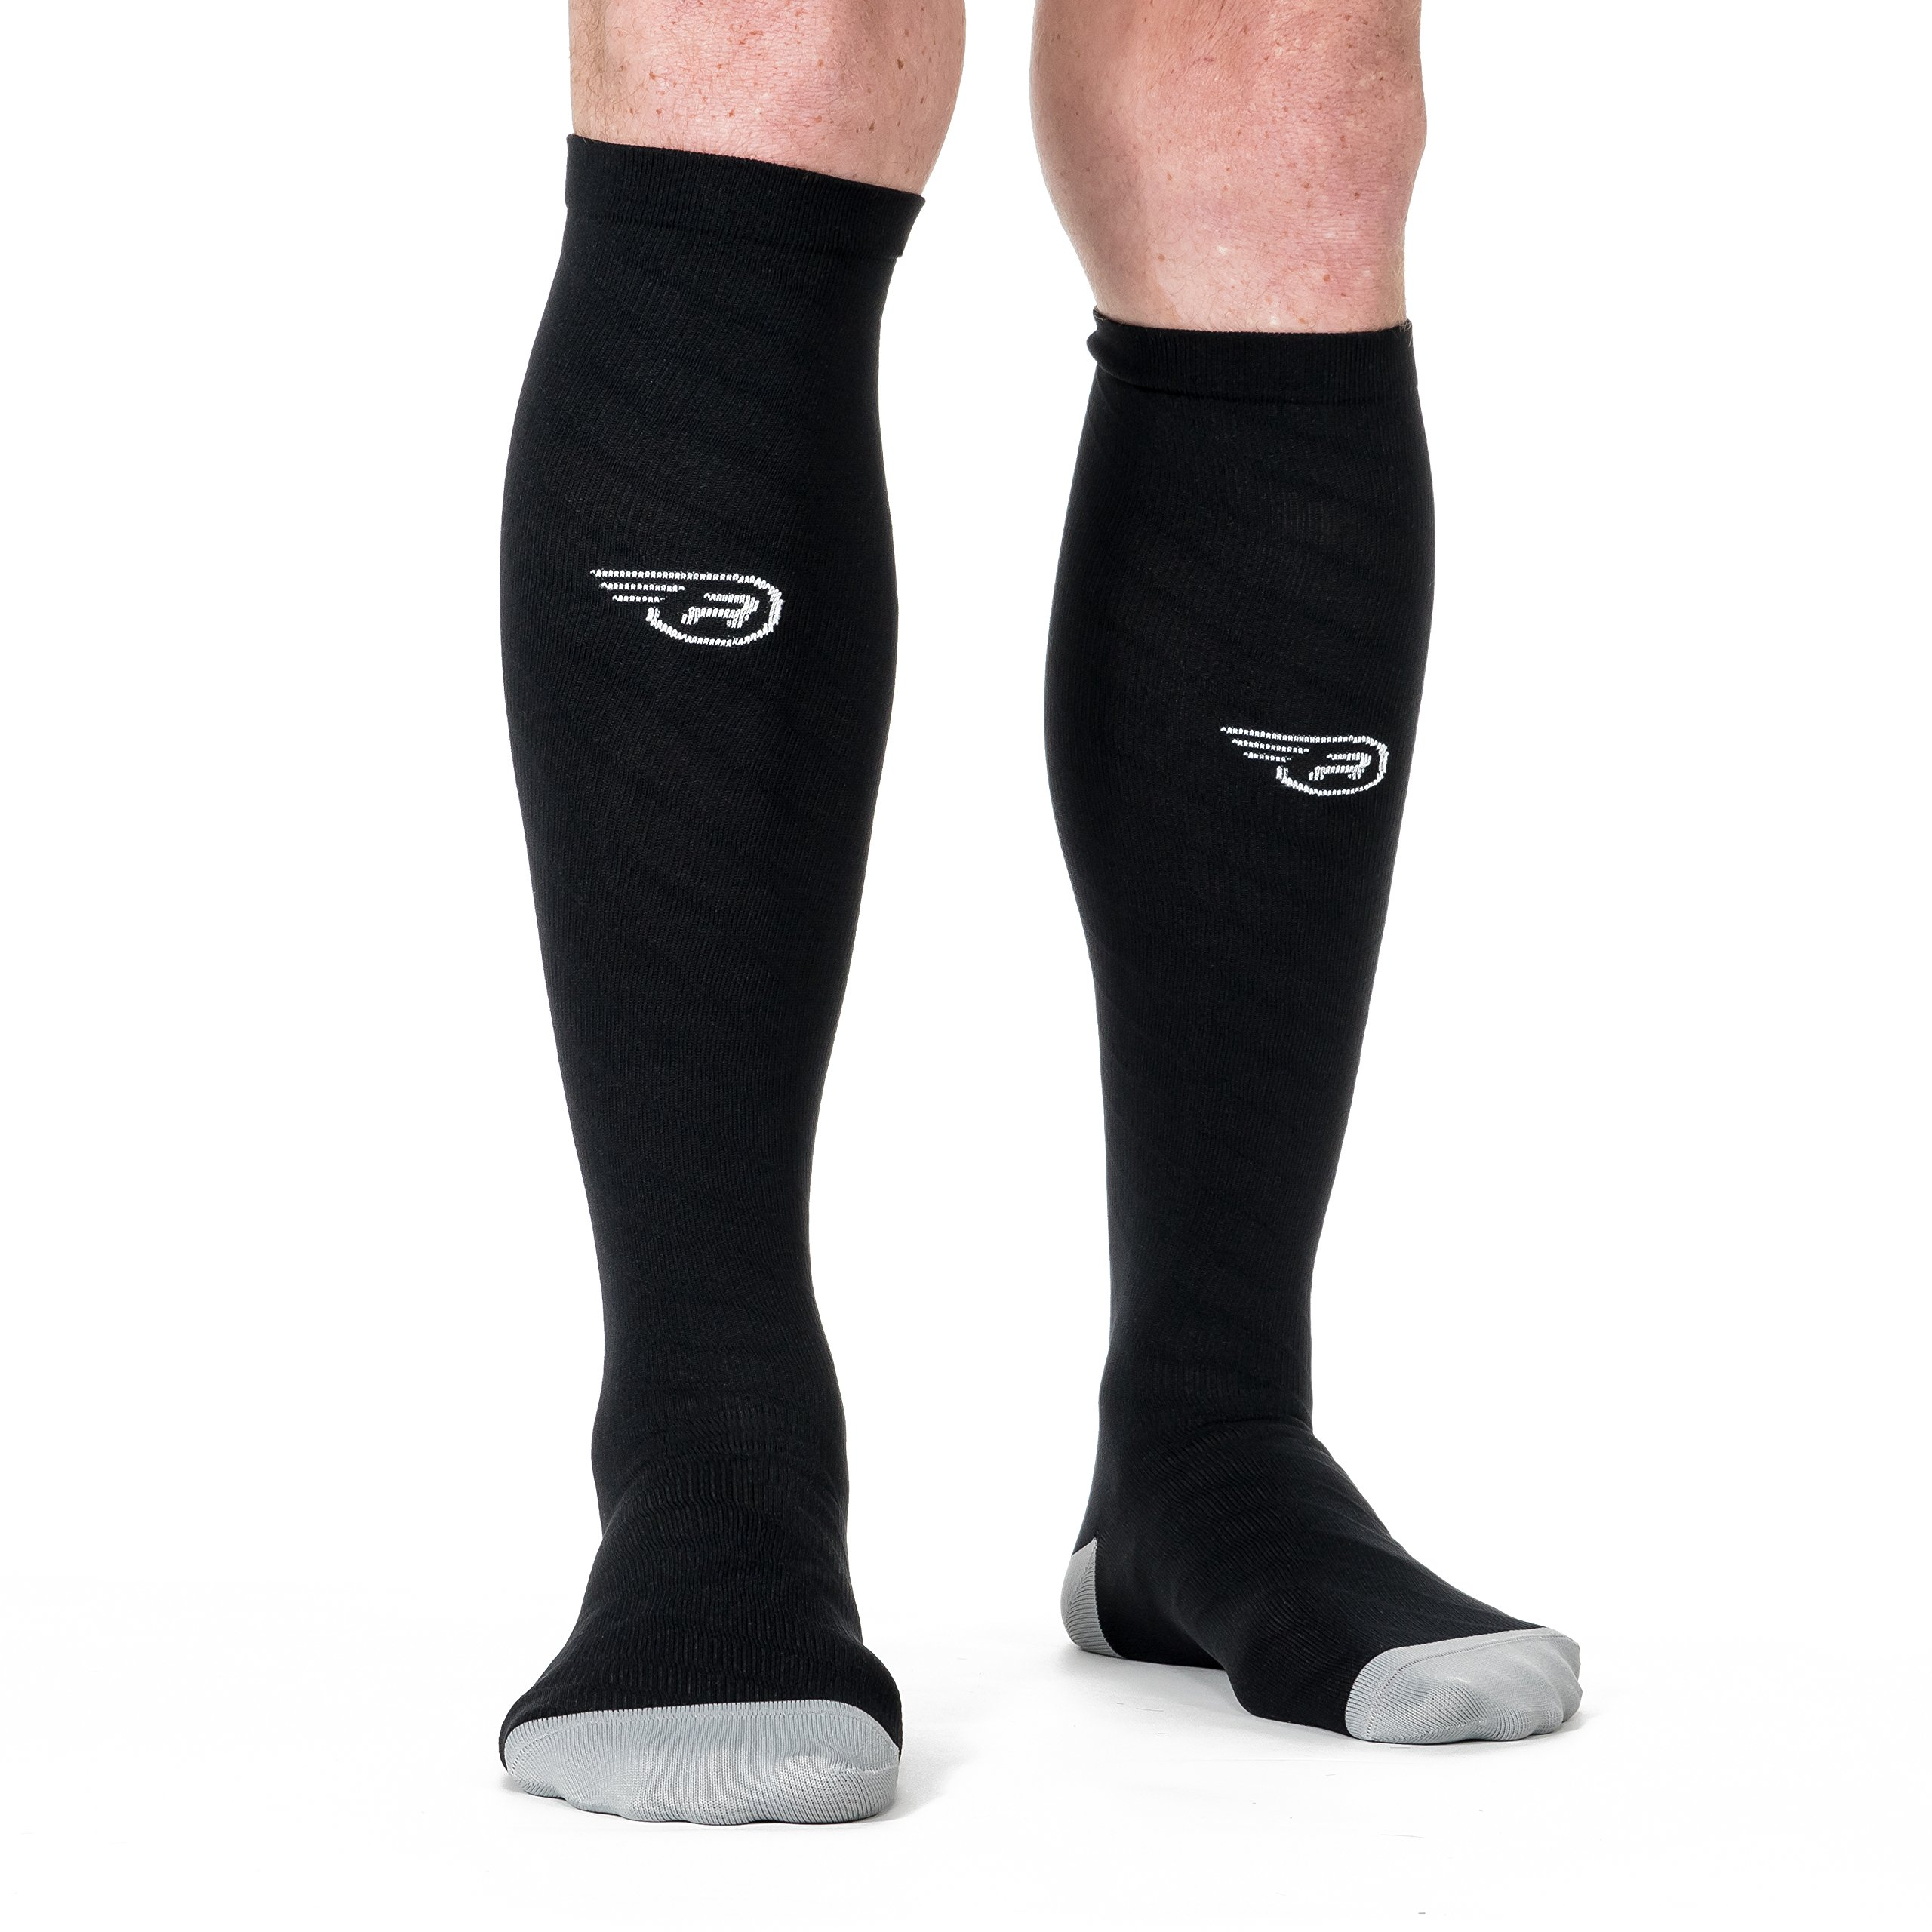 Compression Socks – Graduated Comfort Fit for Athletic Running, Nurses, Maternity, Flight Travel | Mens and Womens Compressive Stockings | Circulation, Stamina and Recovery Support